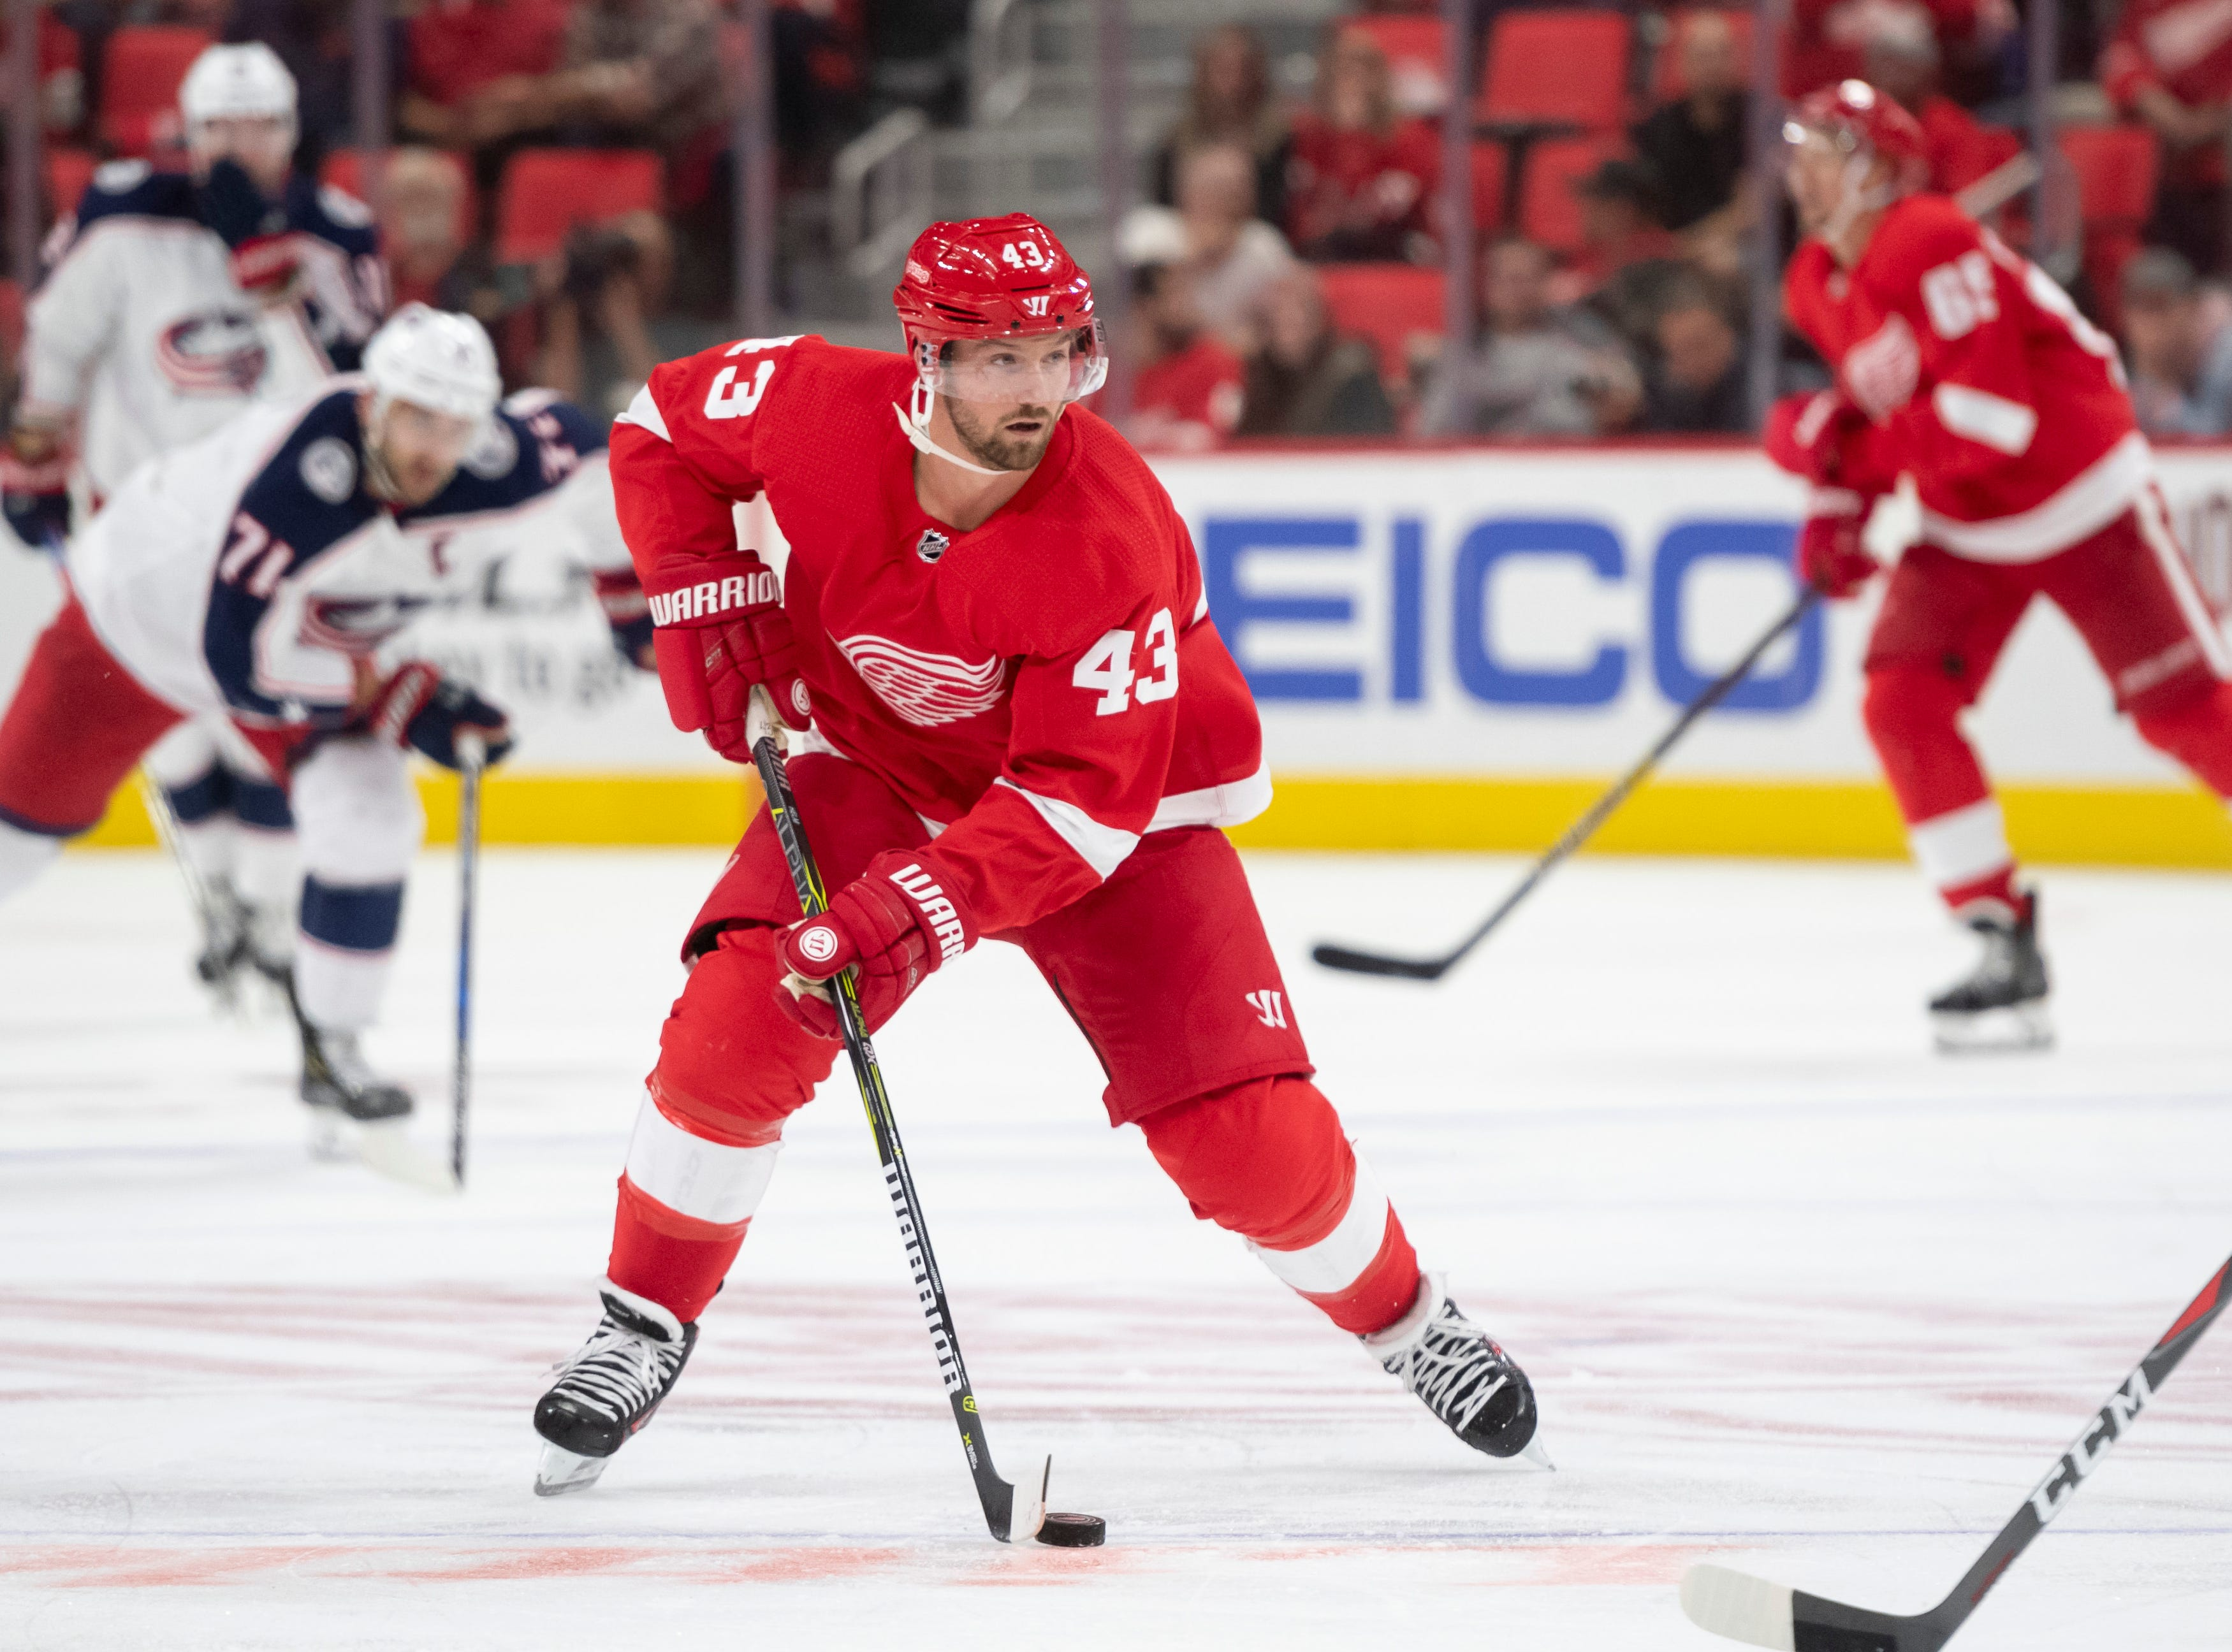 Detroit center Darren Helm                Photos are of the Detroit Red Wings vs. the Columbus Blue Jackets, at Little Caesars Arena, in Detroit, October 4, 2018.  (David Guralnick / The Detroit News)